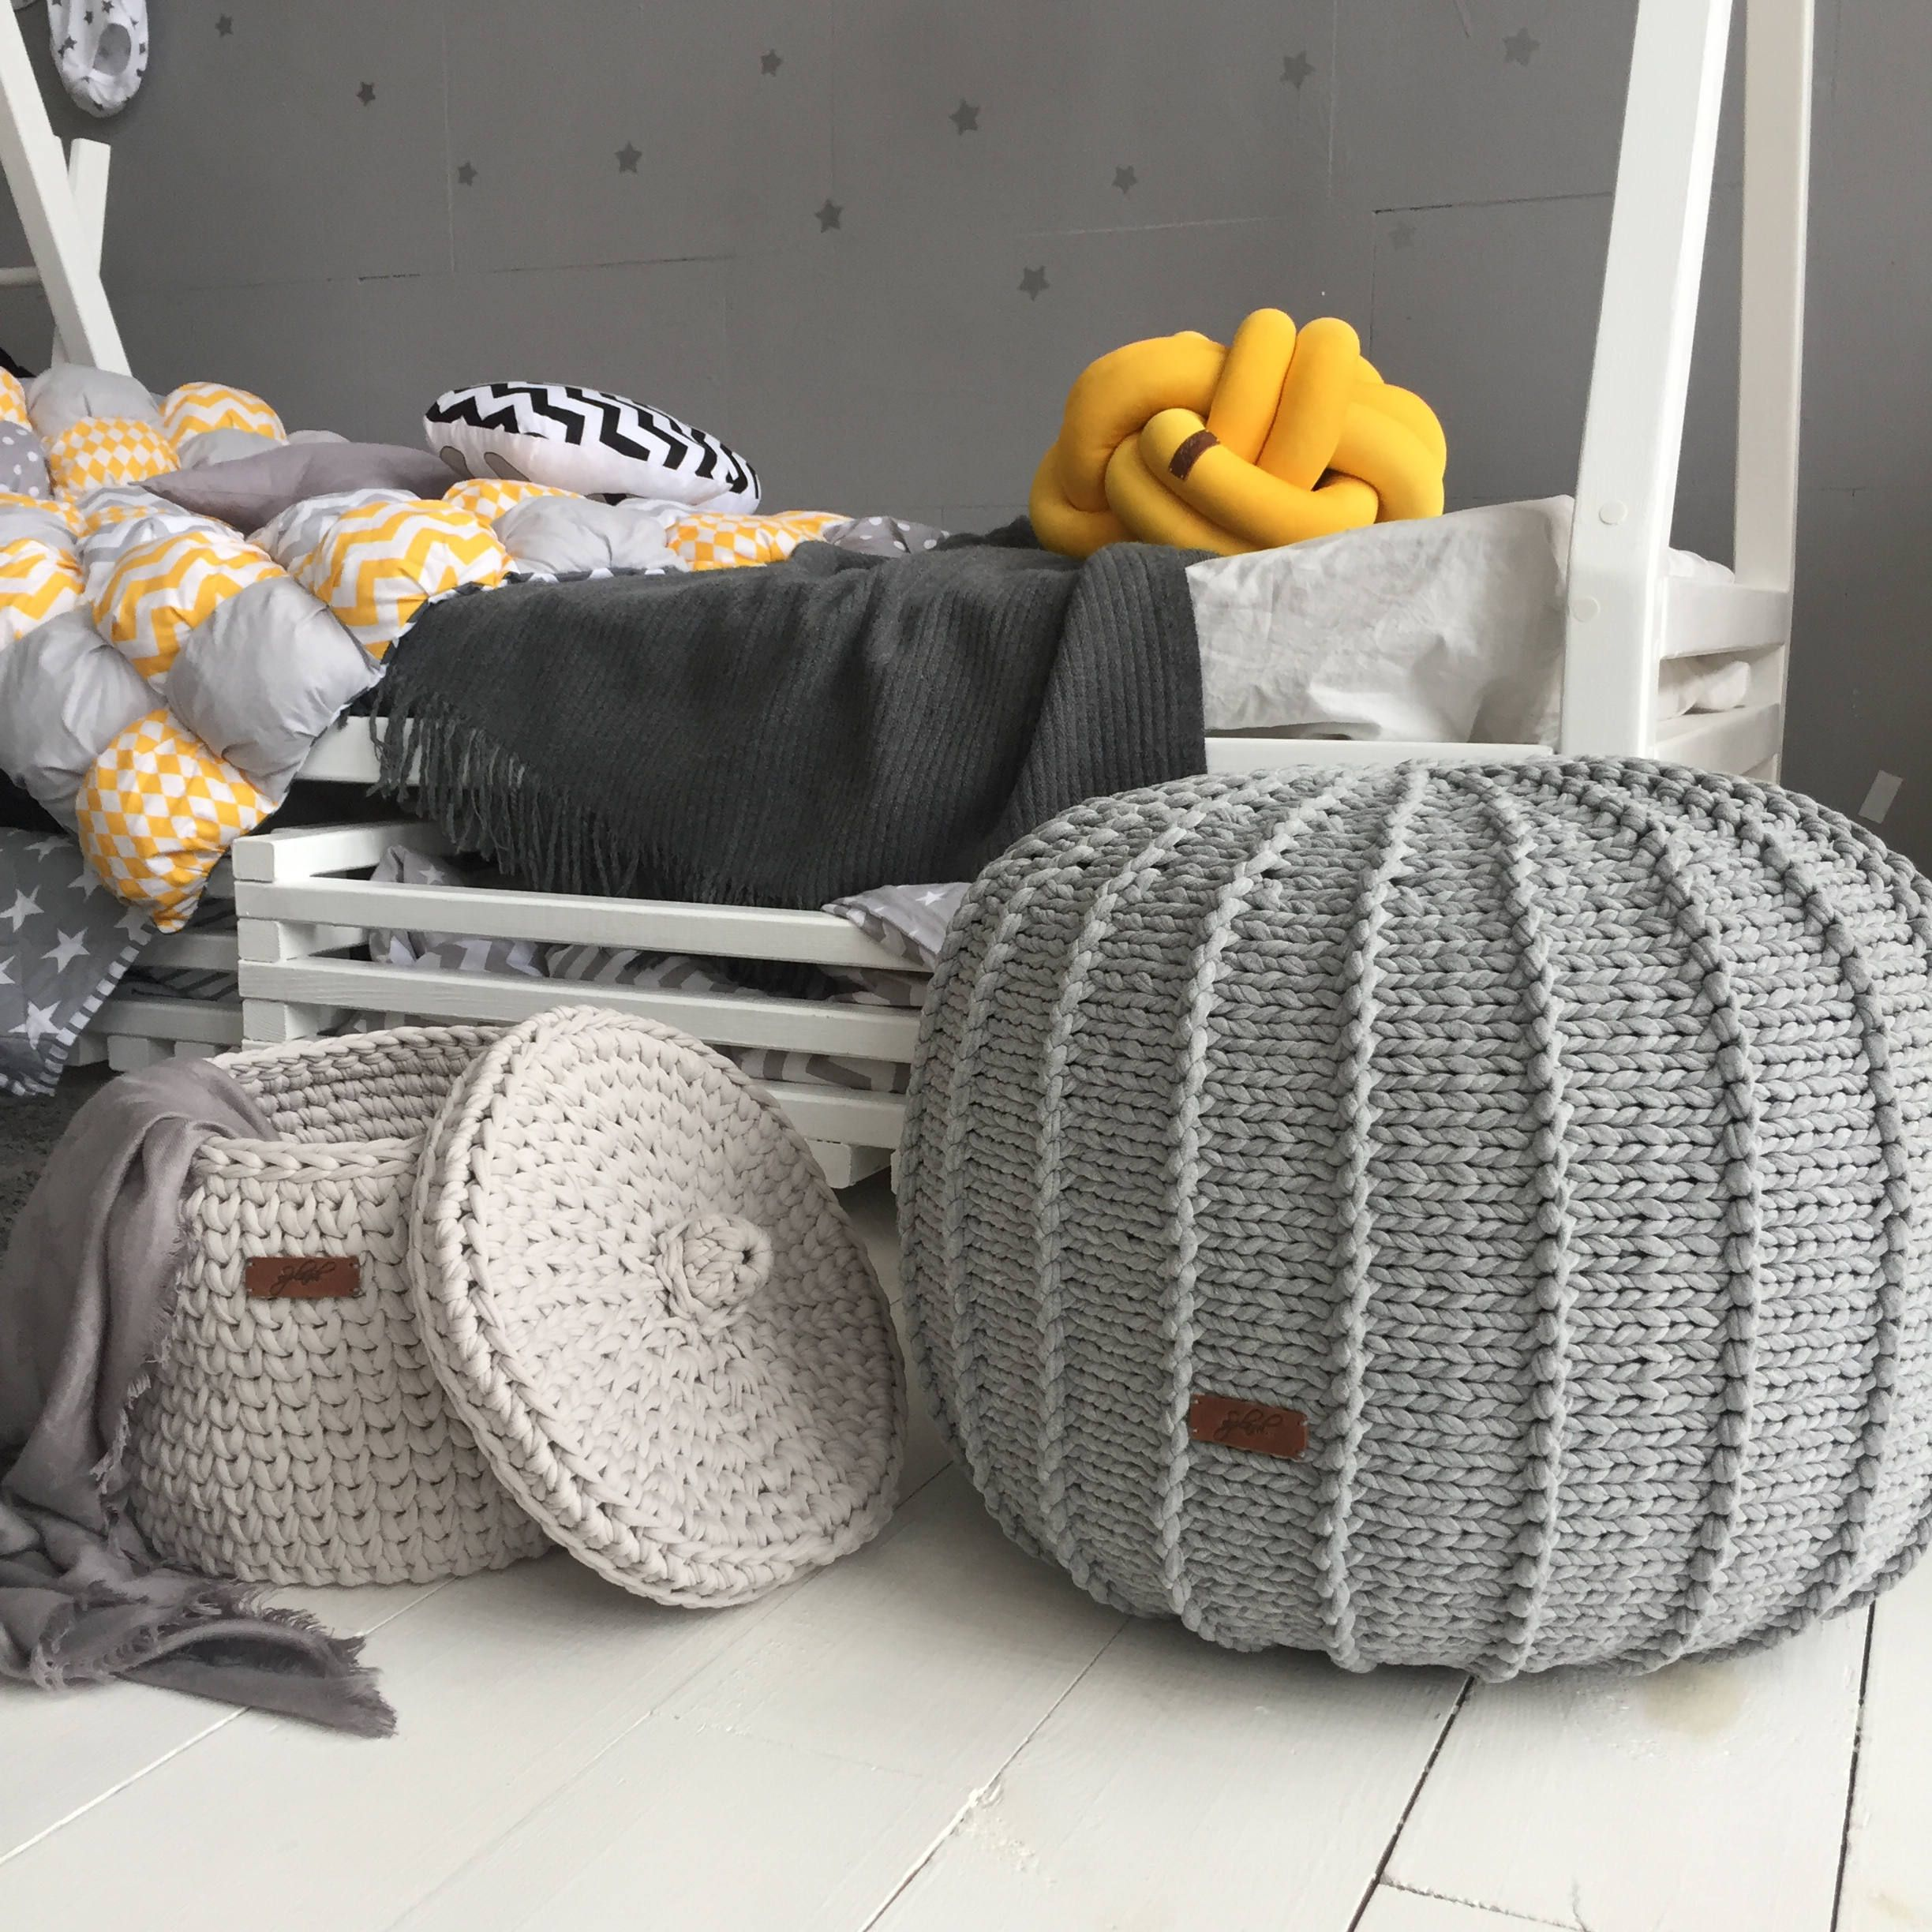 Large Pouf Ottoman Interesting Large Grey Floor Pouf Ottoman  Knitted Pouf  Knit Pouf  Knitted Inspiration